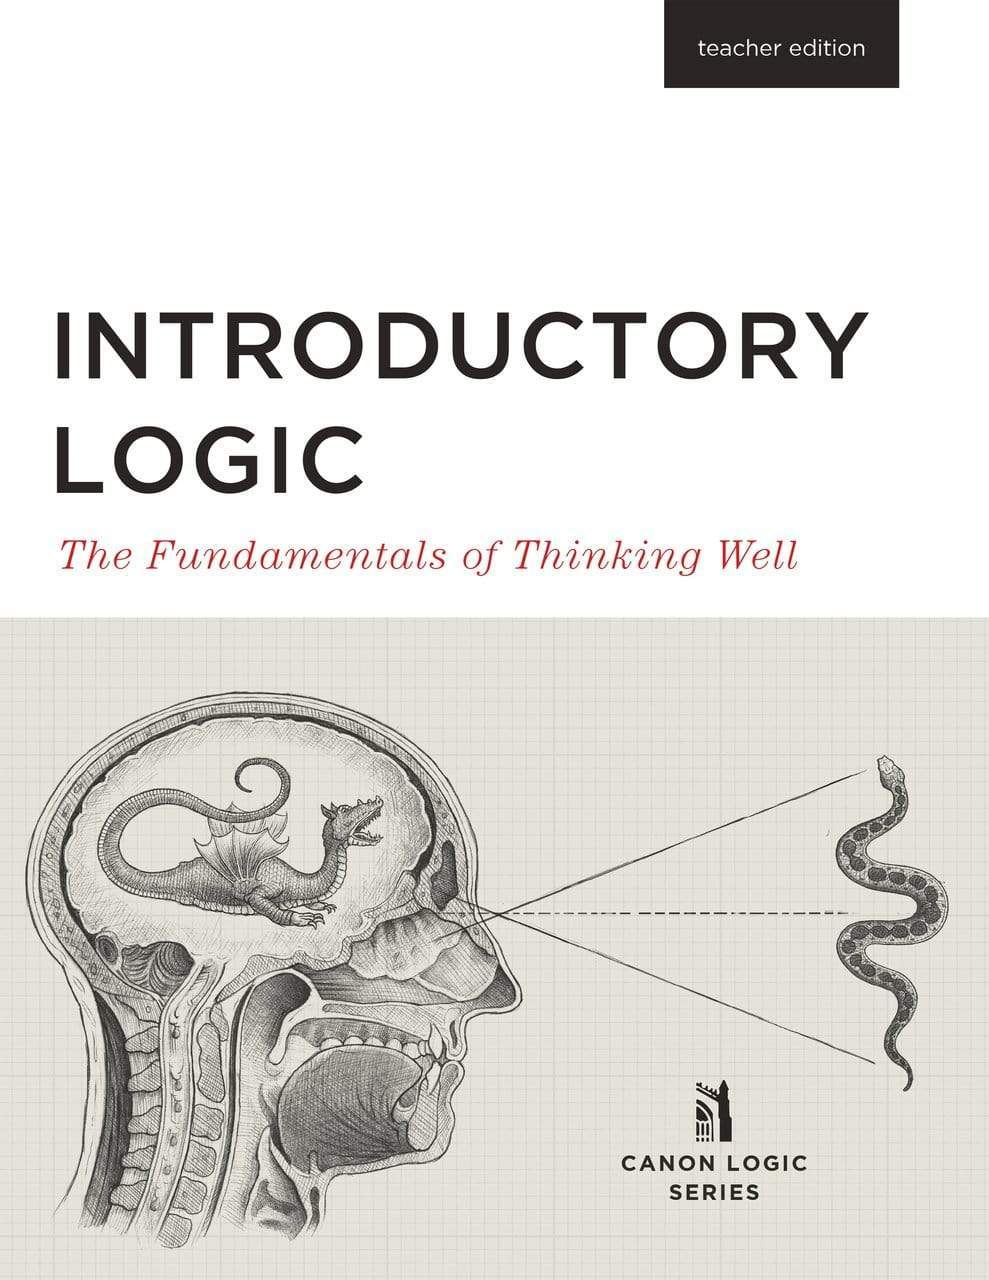 Introductory Logic: Teacher